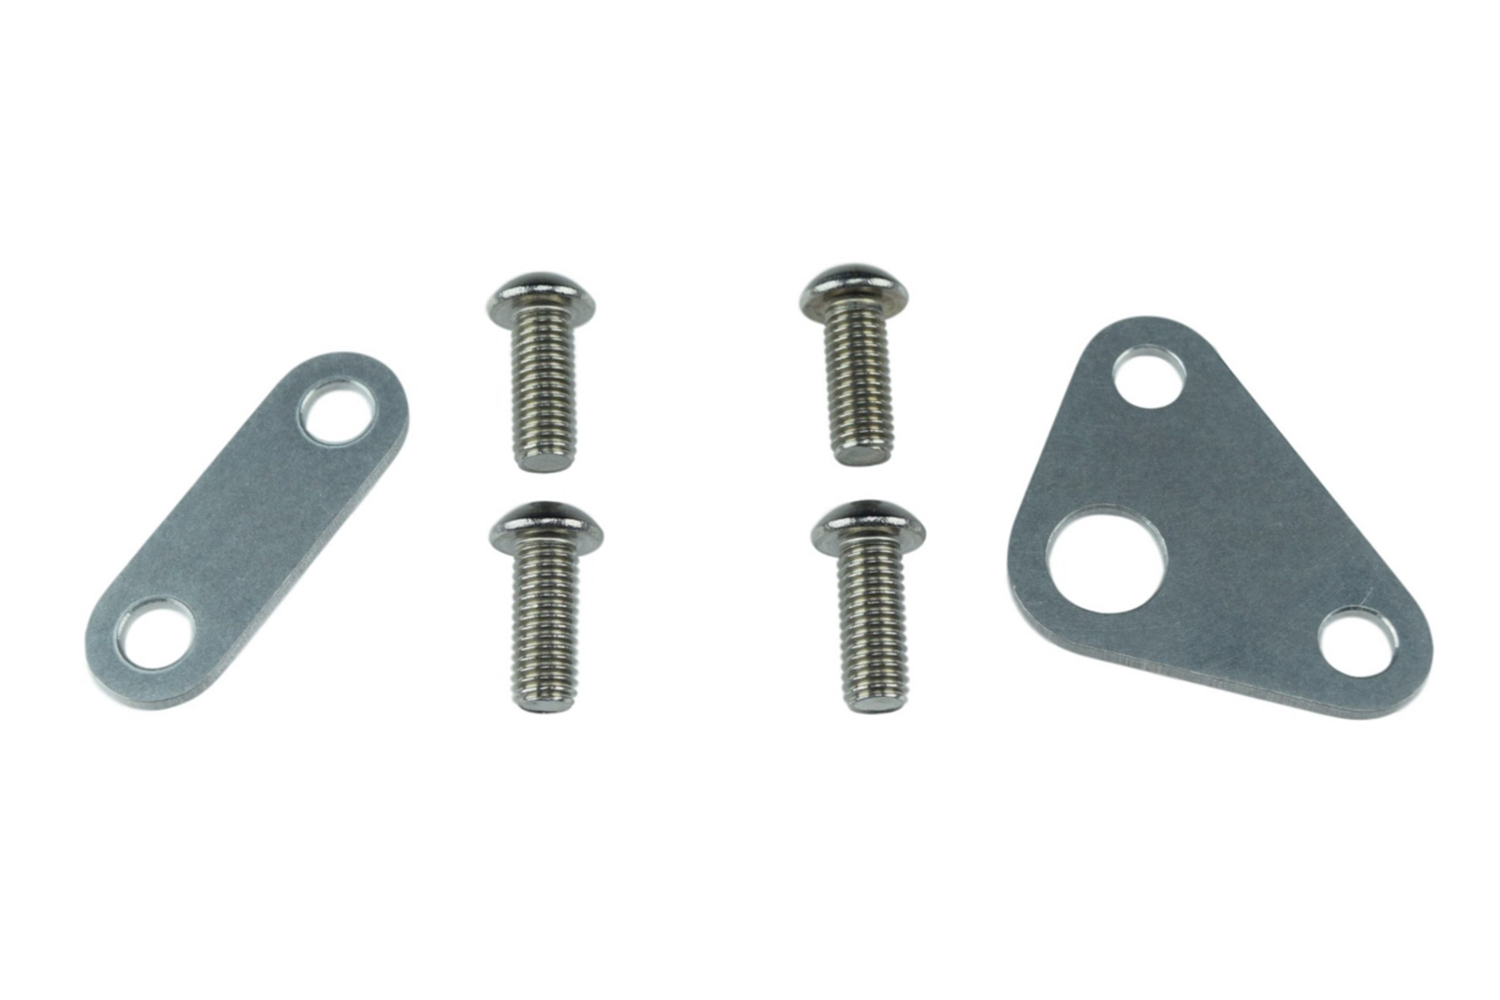 Ict Billet LS Oil Pump Spacers (Dou ble Roller Timing Chain)